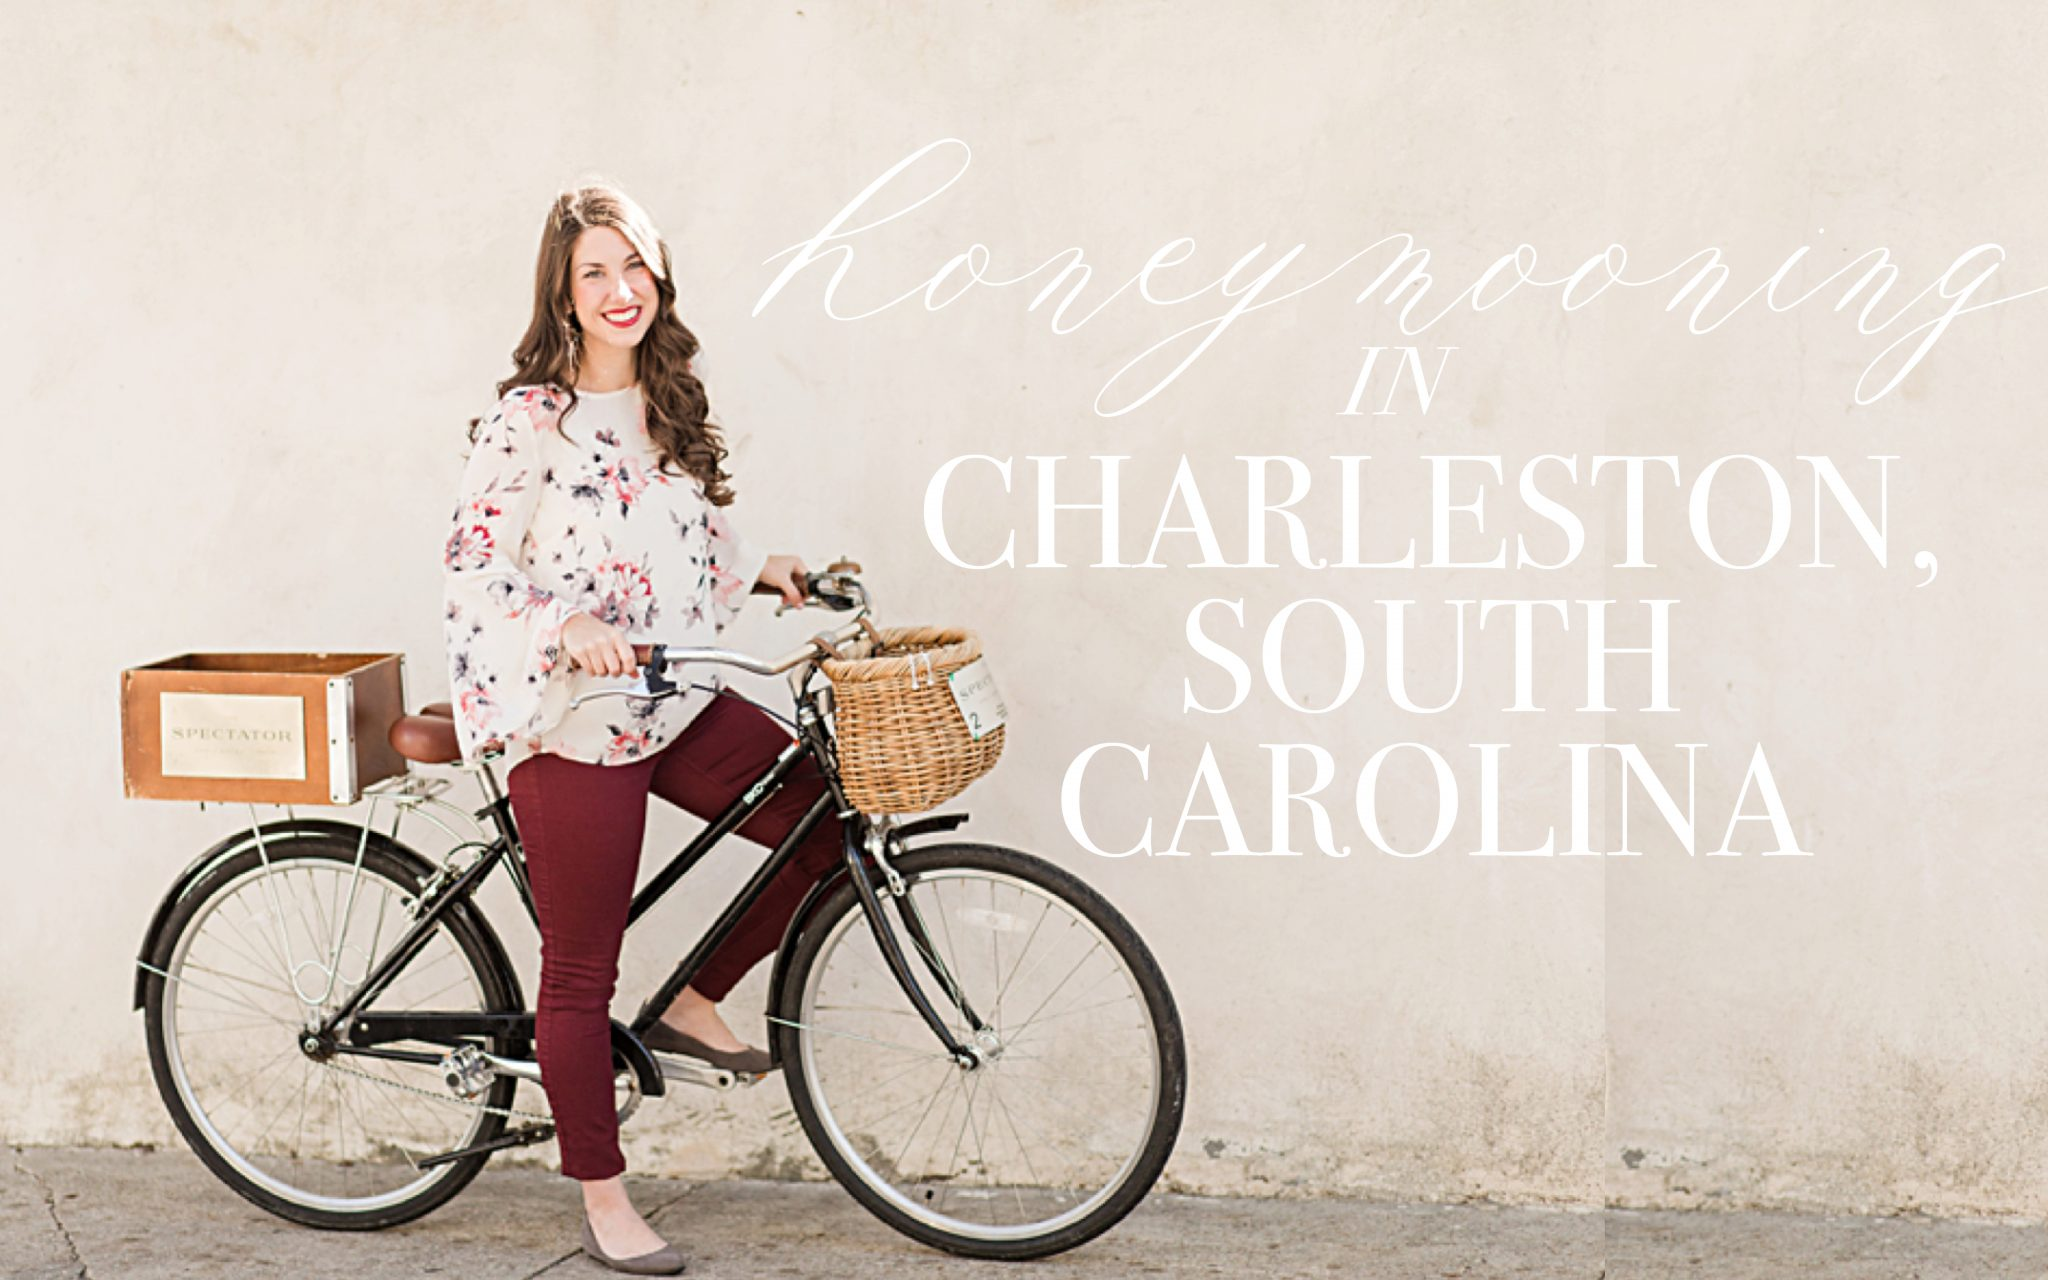 Our Honeymoon destination to Charleston, South Carolina